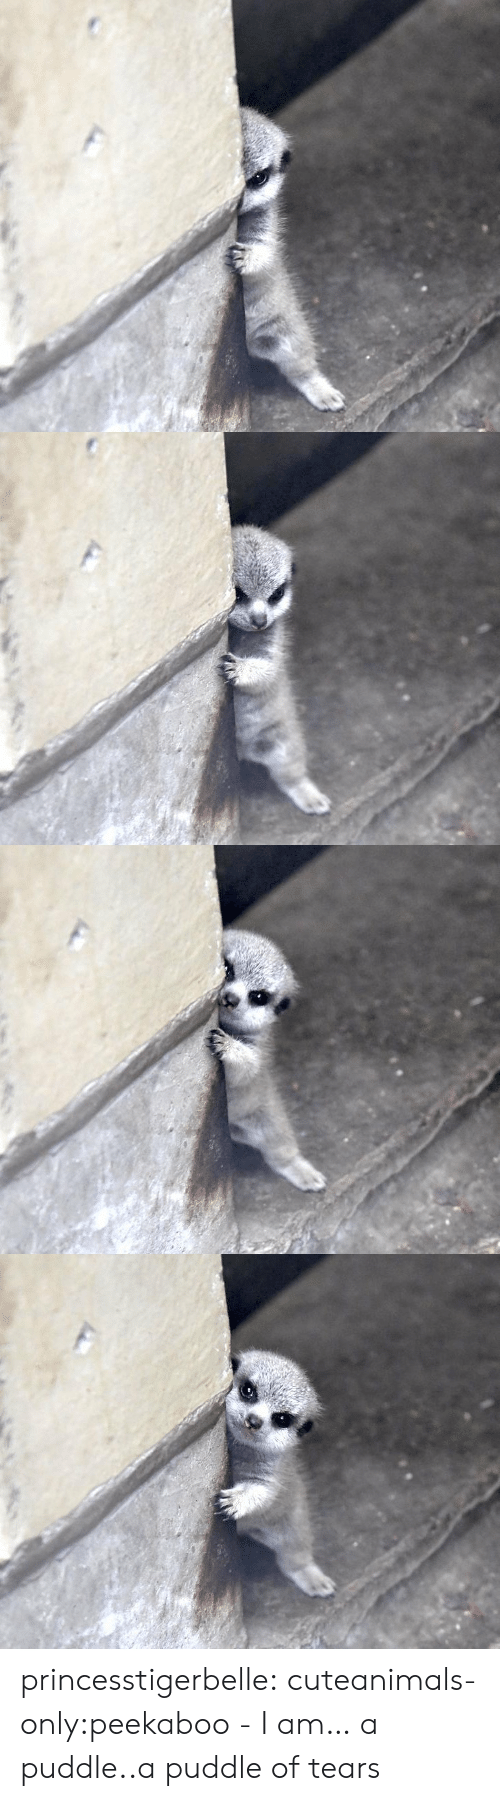 Cute, Tumblr, and Blog: princesstigerbelle:  cuteanimals-only:peekaboo - I am… a puddle..a puddle of tears